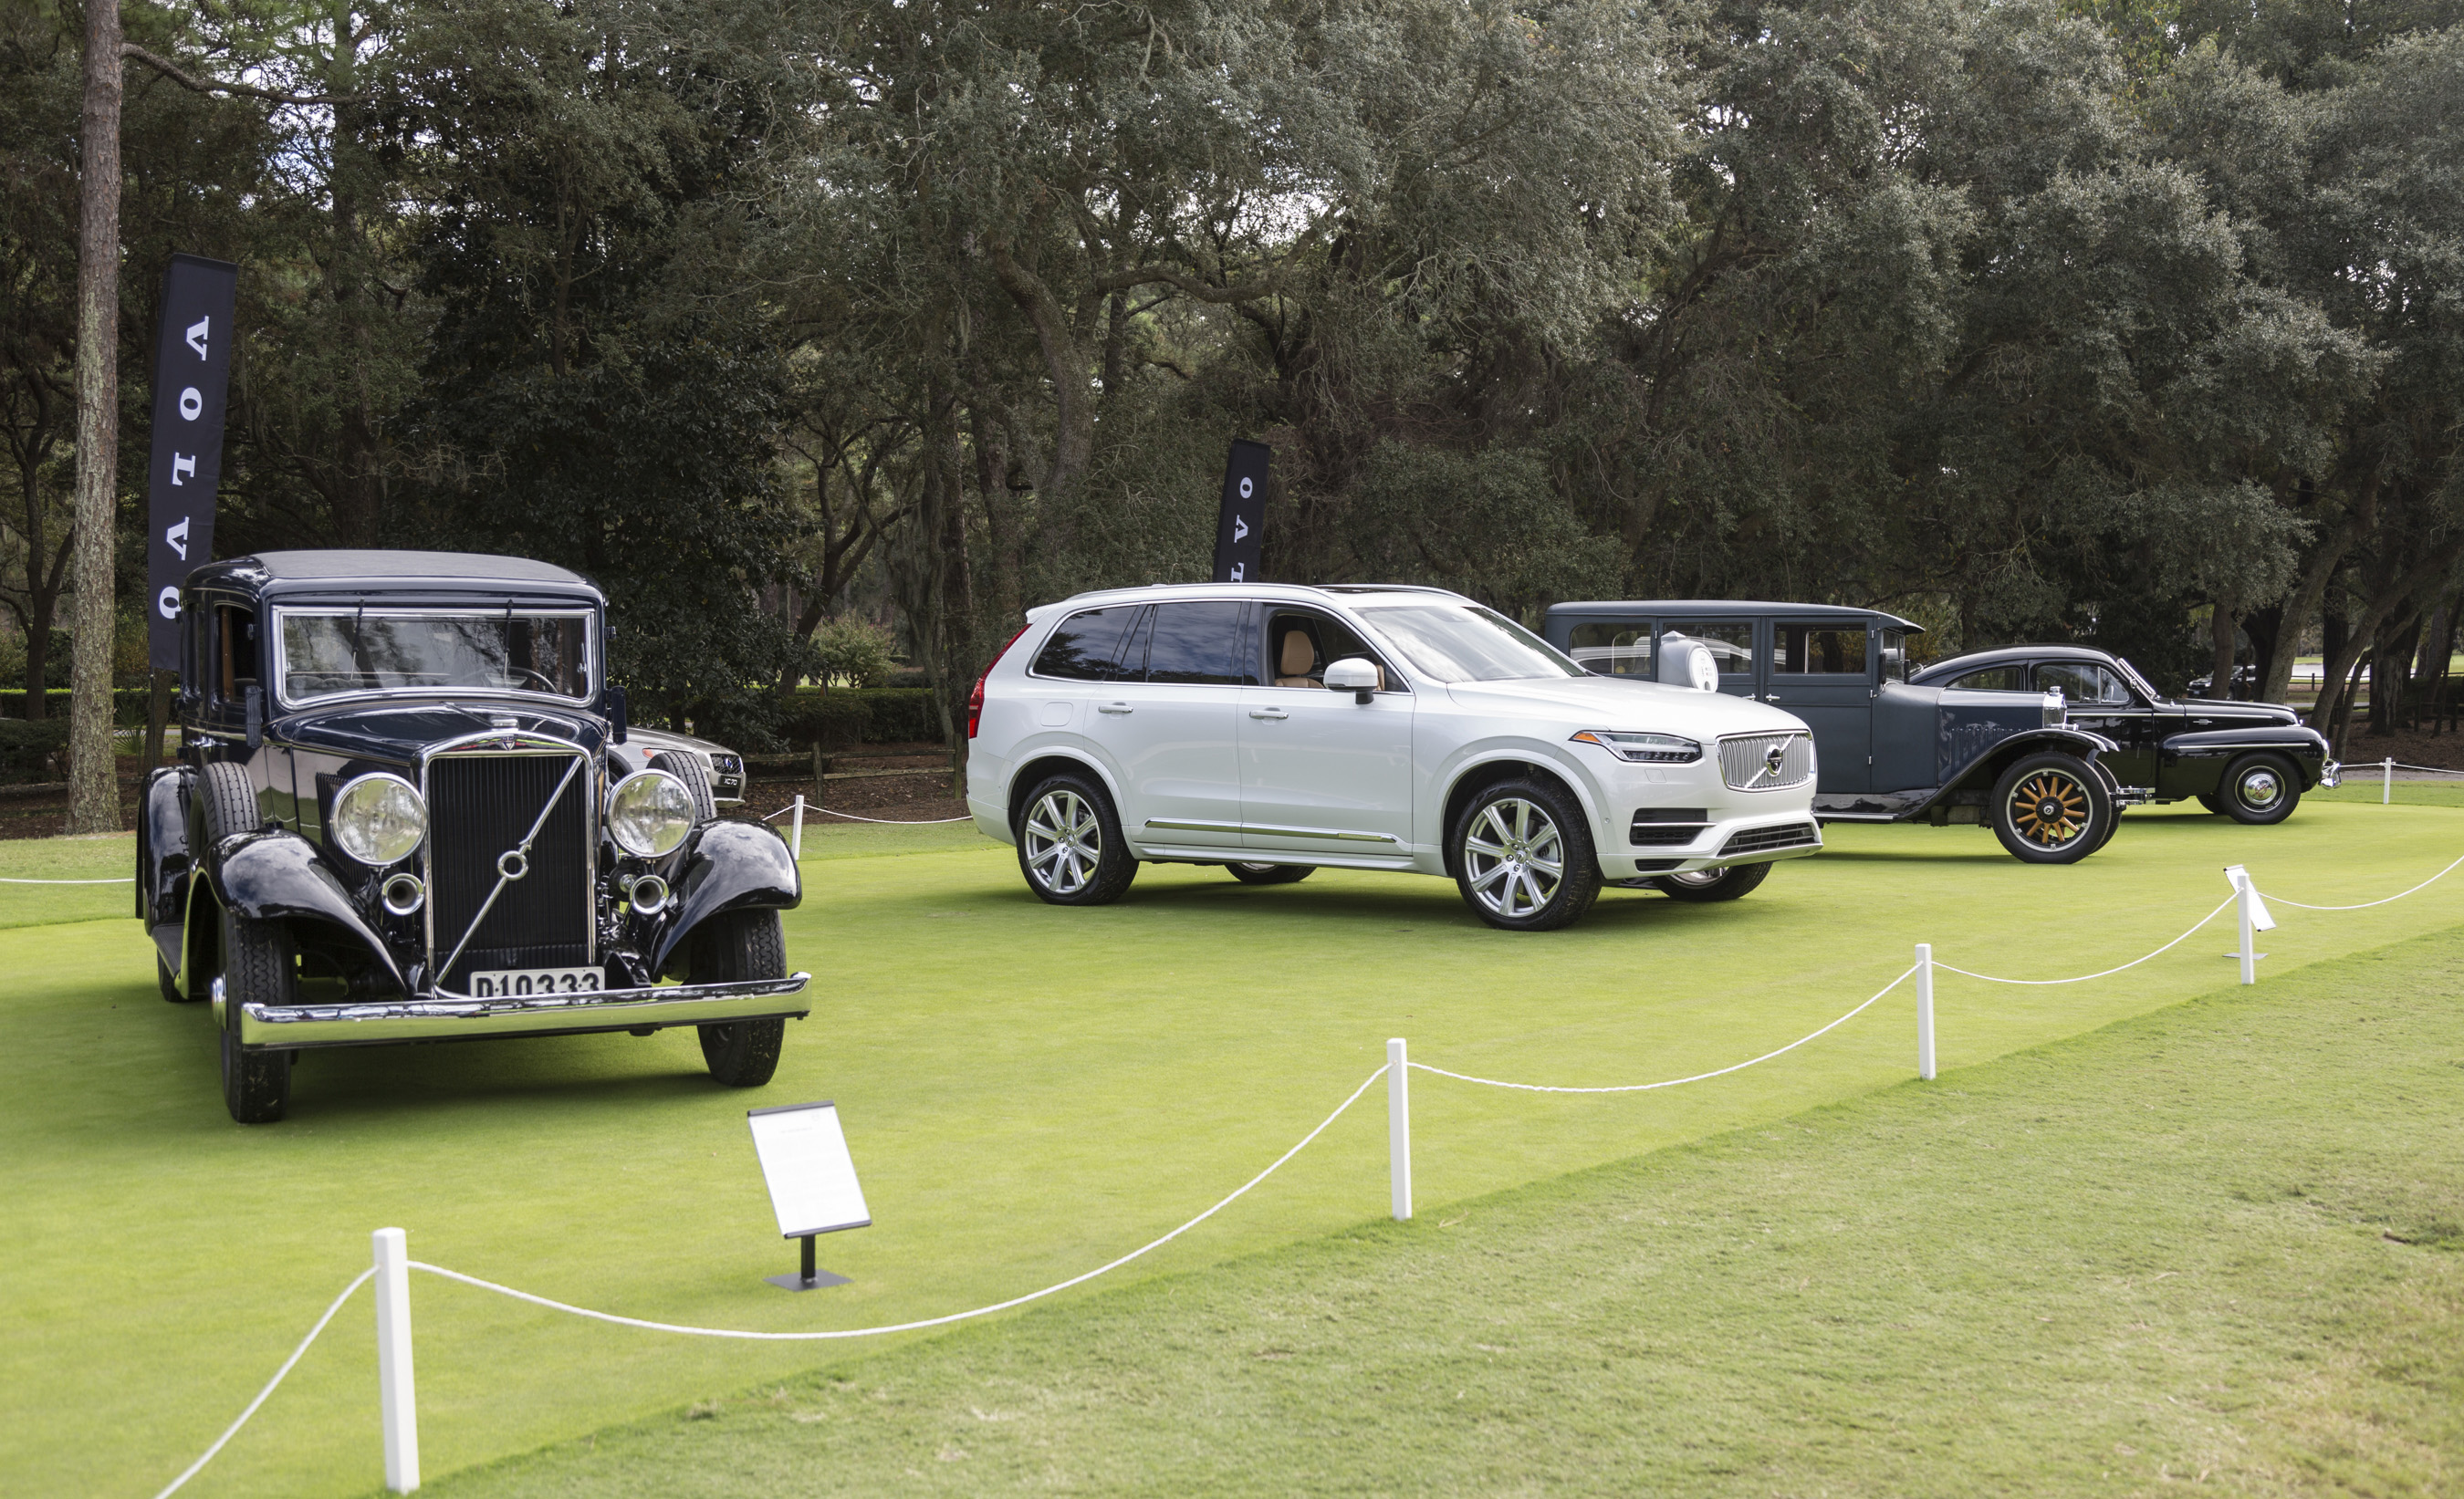 Volvo displayed significant vehicles from its past and future